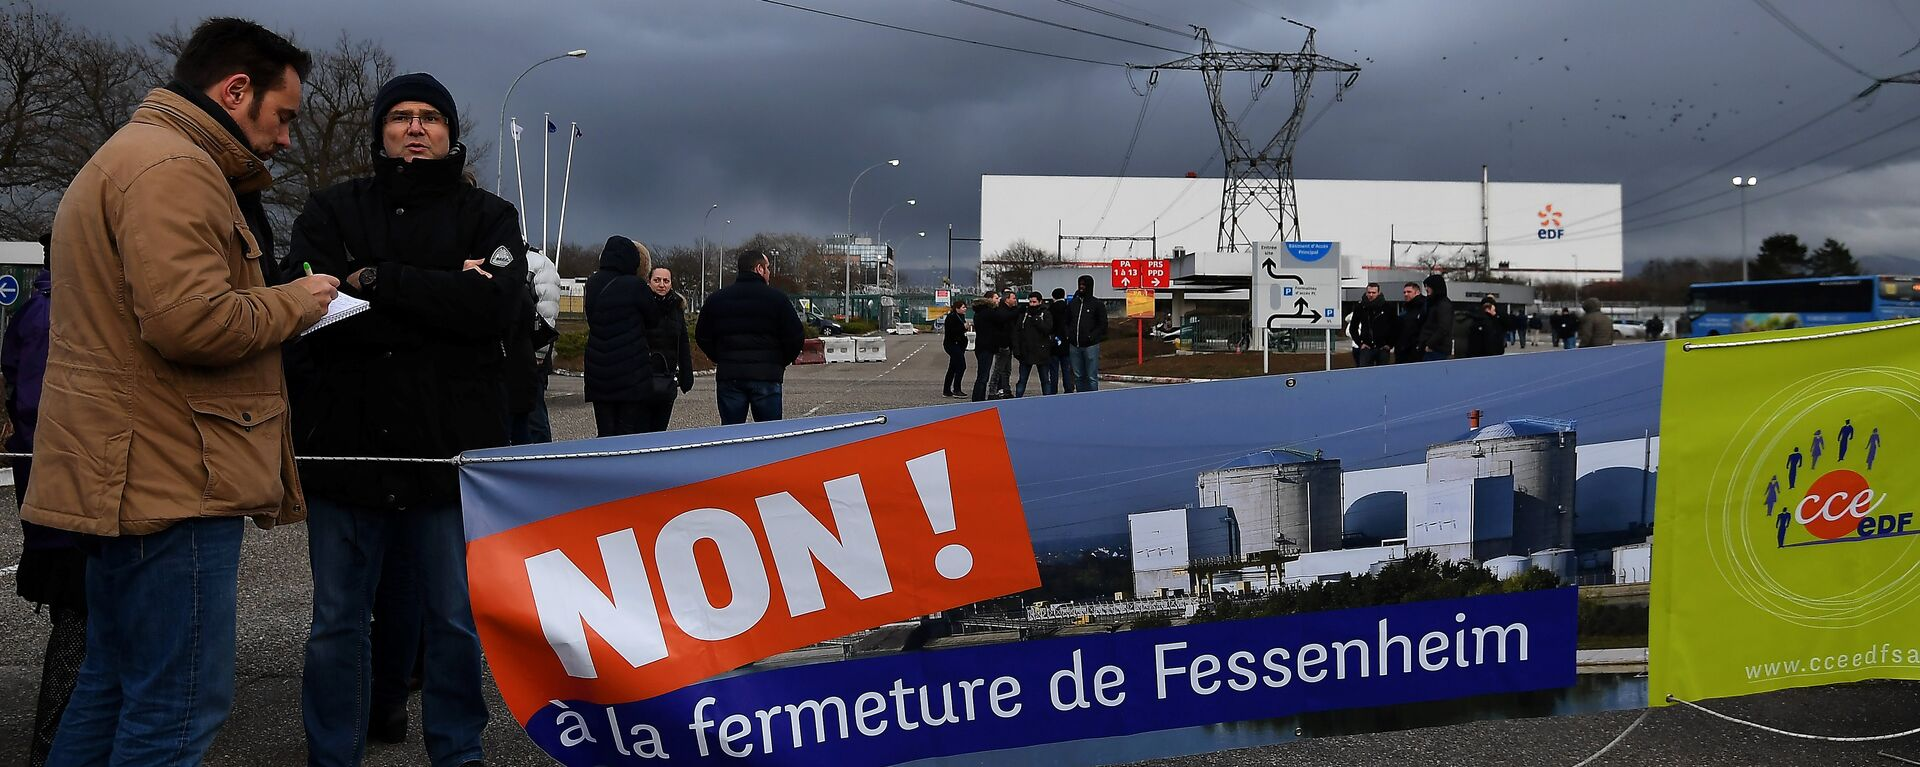 Workers demonstrate in front of the nuclear powerplant of Fessenheim, on January 19, 2018, to protest against the planned closure of plant, the country's oldest nuclear power plant - Sputnik International, 1920, 20.01.2018